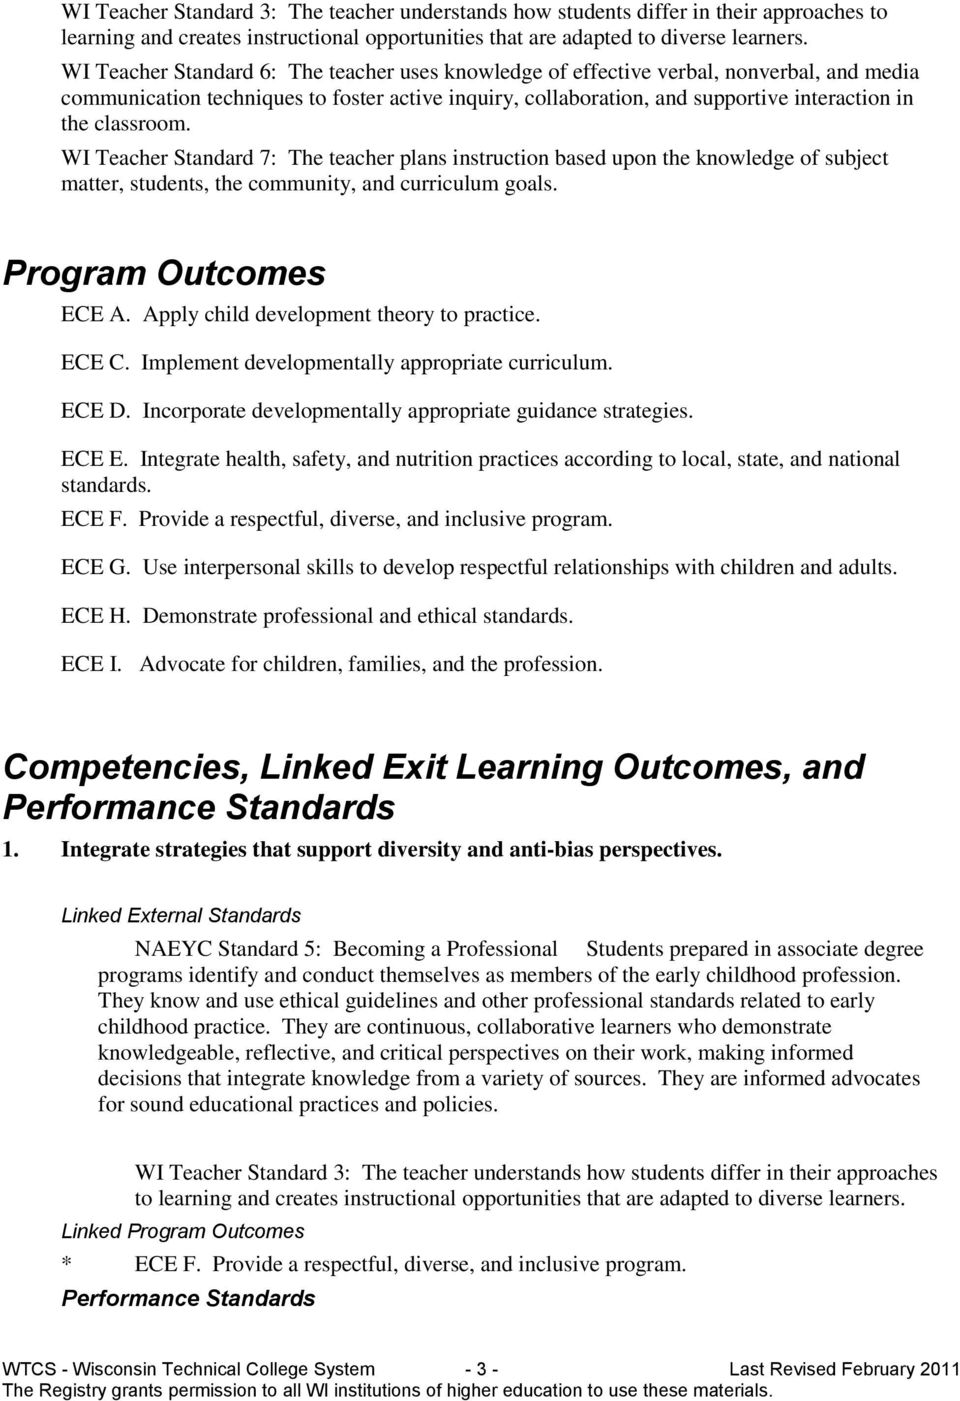 WI Teacher Standard 7: The teacher plans instructin based upn the knwledge f subject matter, students, the cmmunity, and curriculum gals. Prgram Outcmes ECE A. Apply child develpment thery t practice.